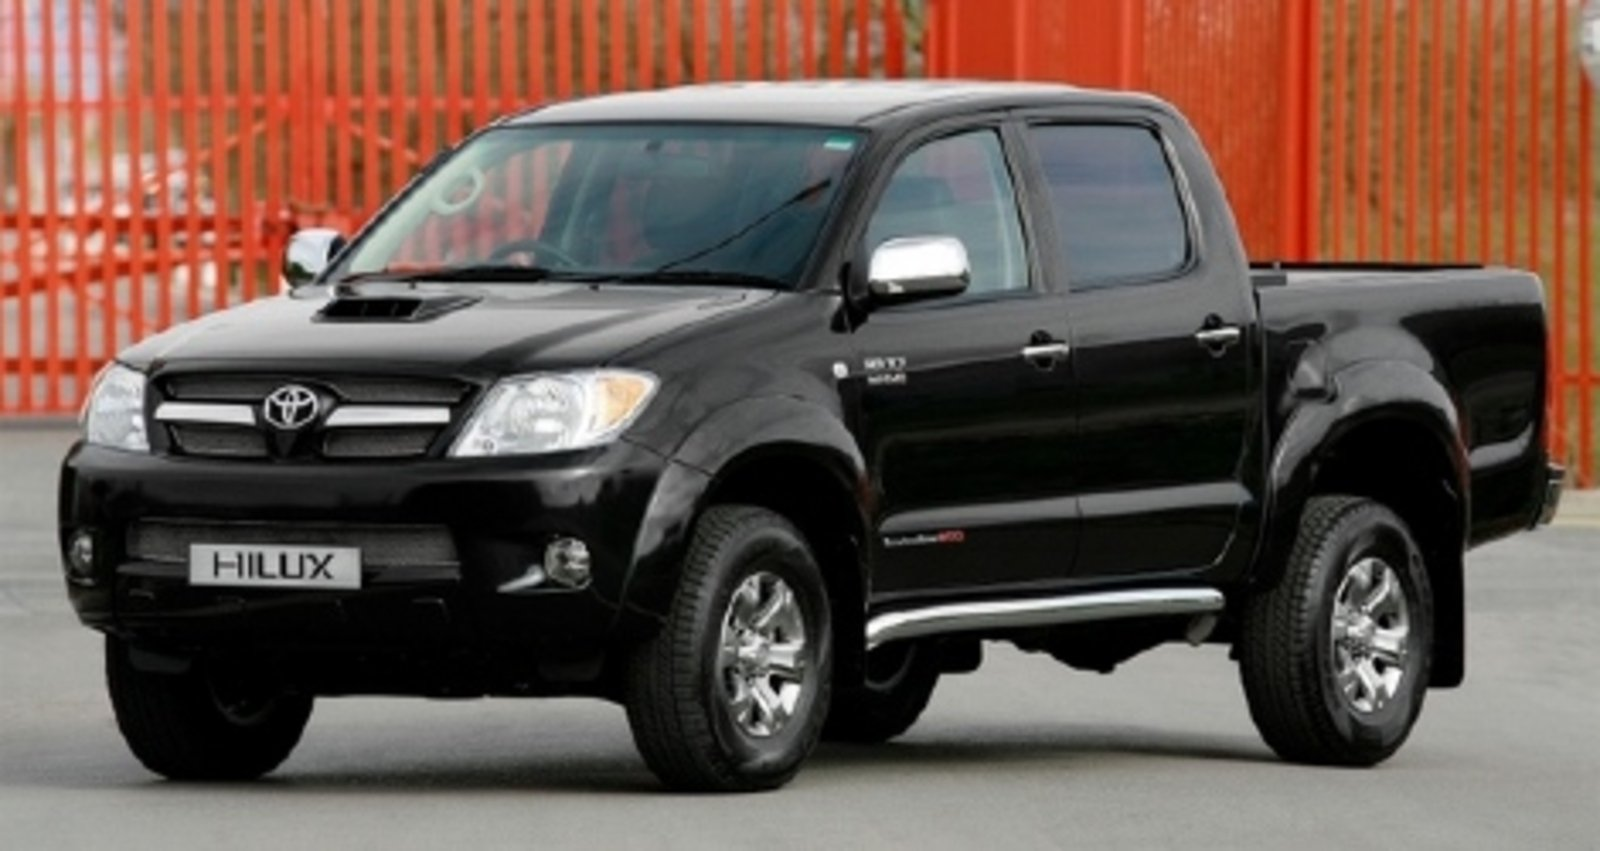 Toyota Hilux Reviews Specs Prices Photos And Videos Top Speed Customised 2016 2008 Invincible 200